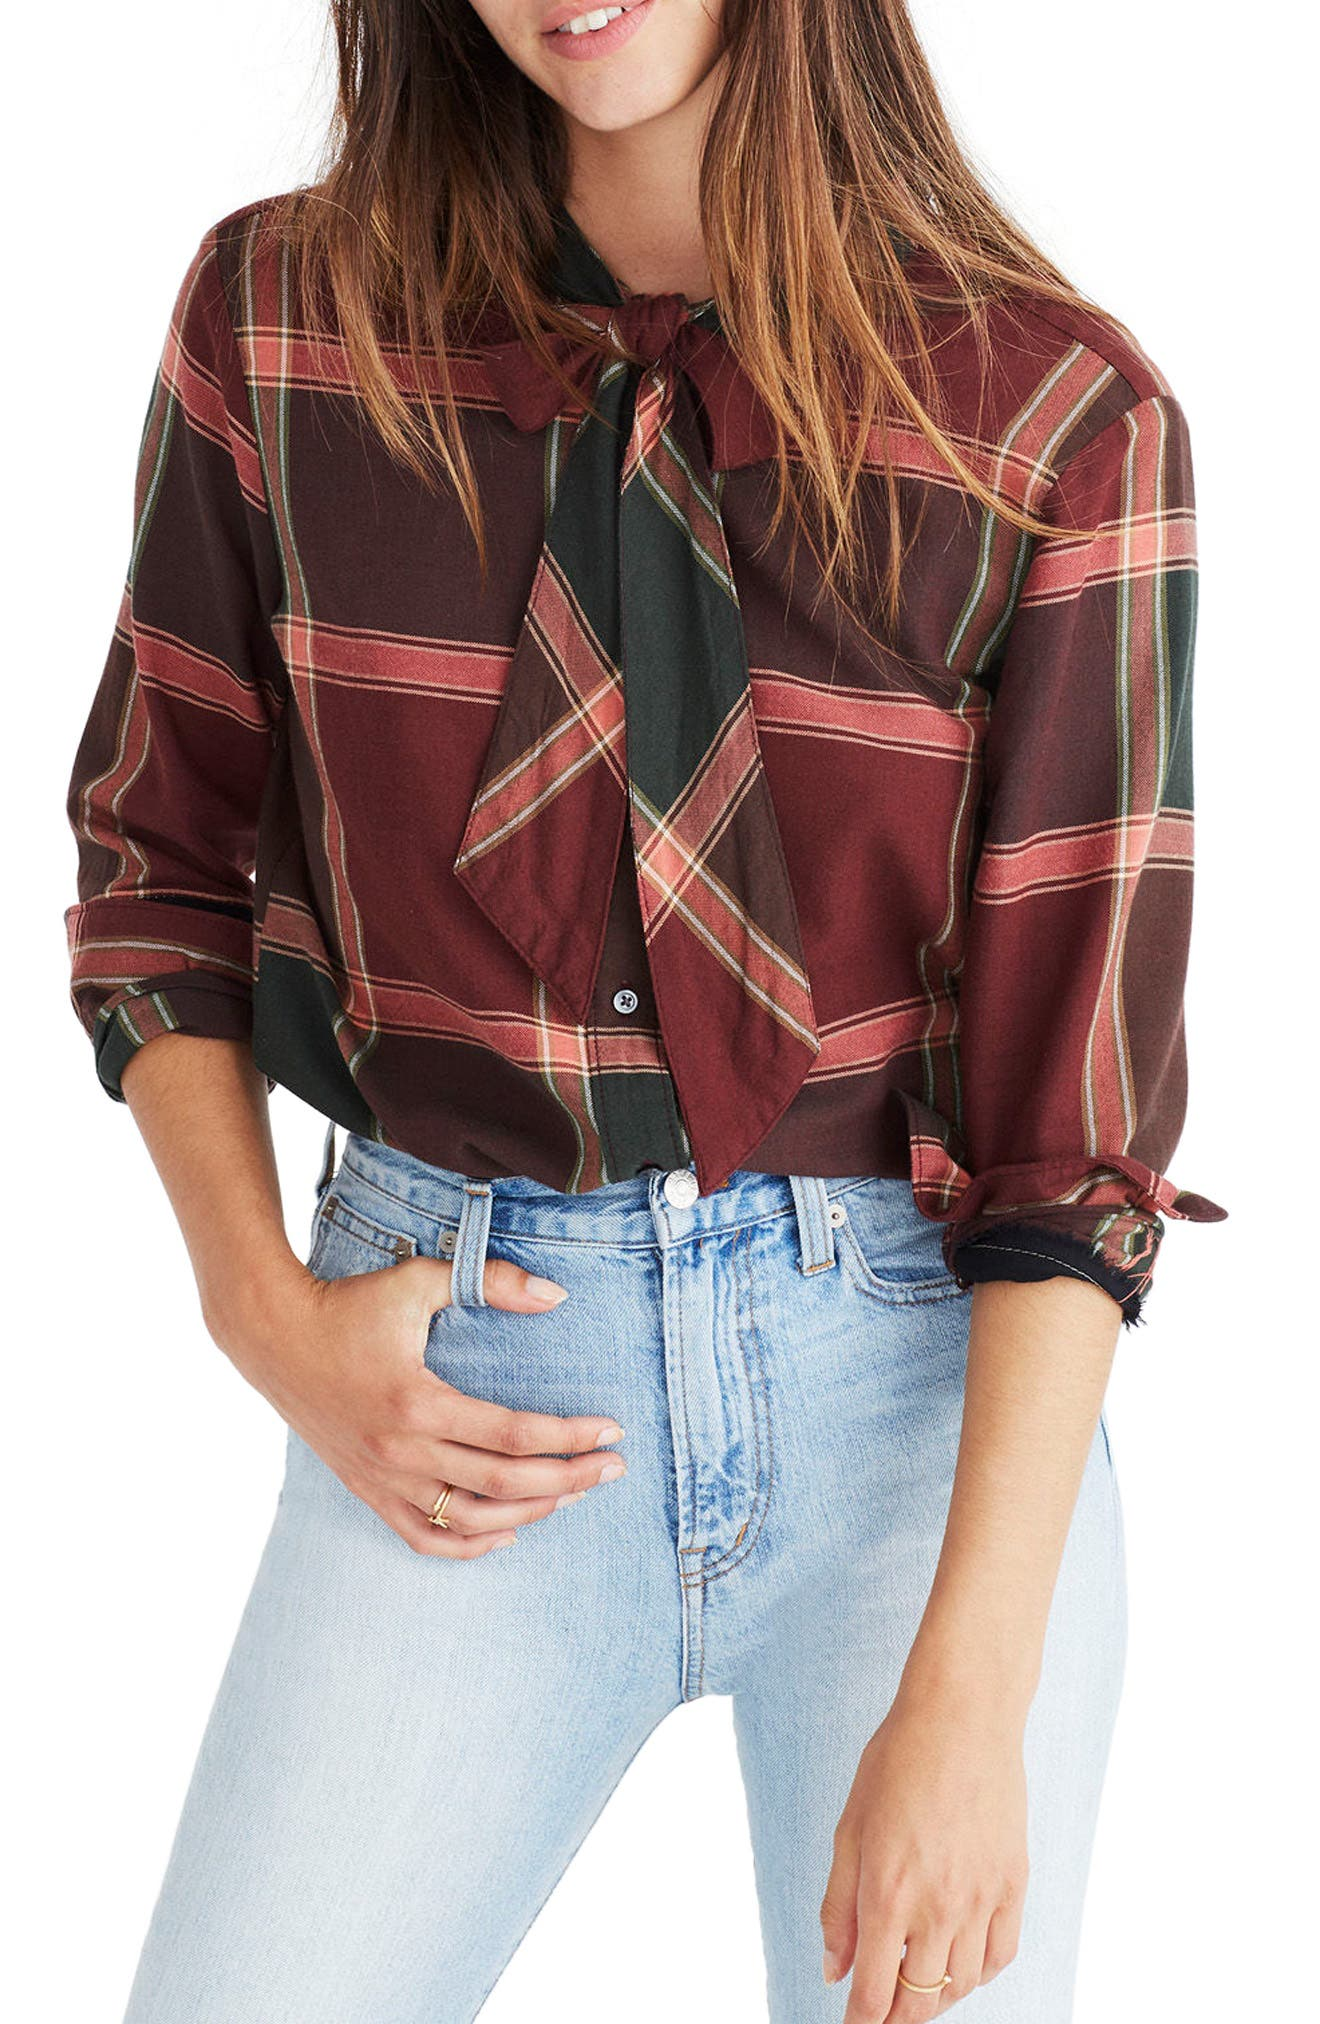 Alternate Image 1 Selected - Madewell Plaid Tie Neck Shirt